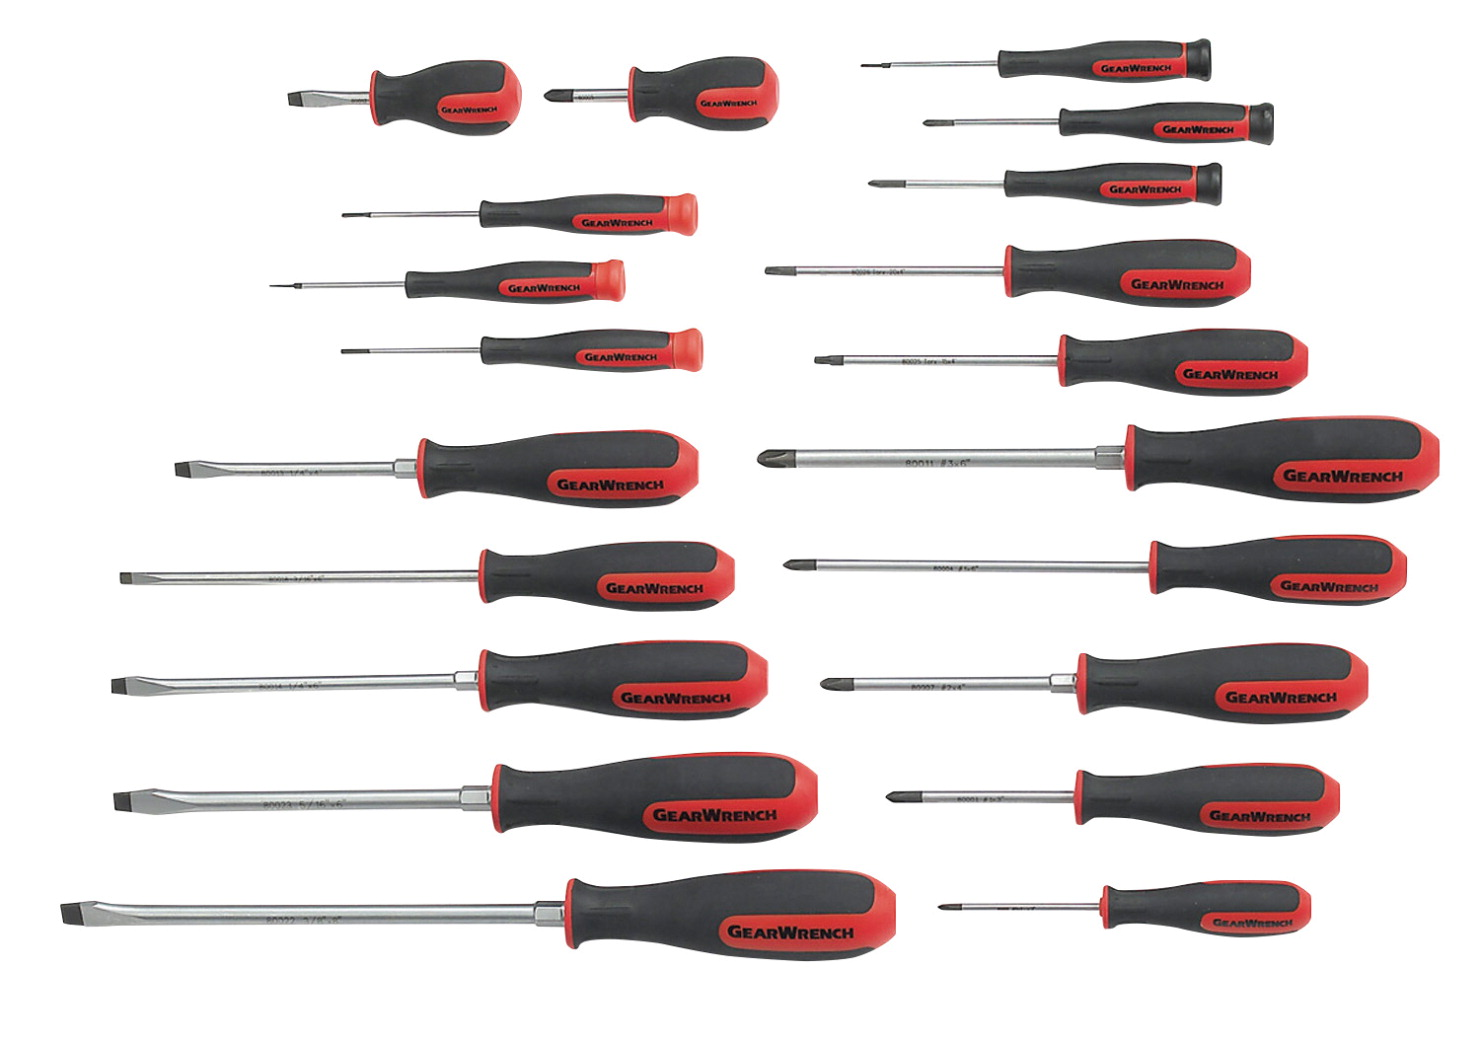 Gearwrench 20-Piece Dual Material Master Screwdriver Set, Set of 20